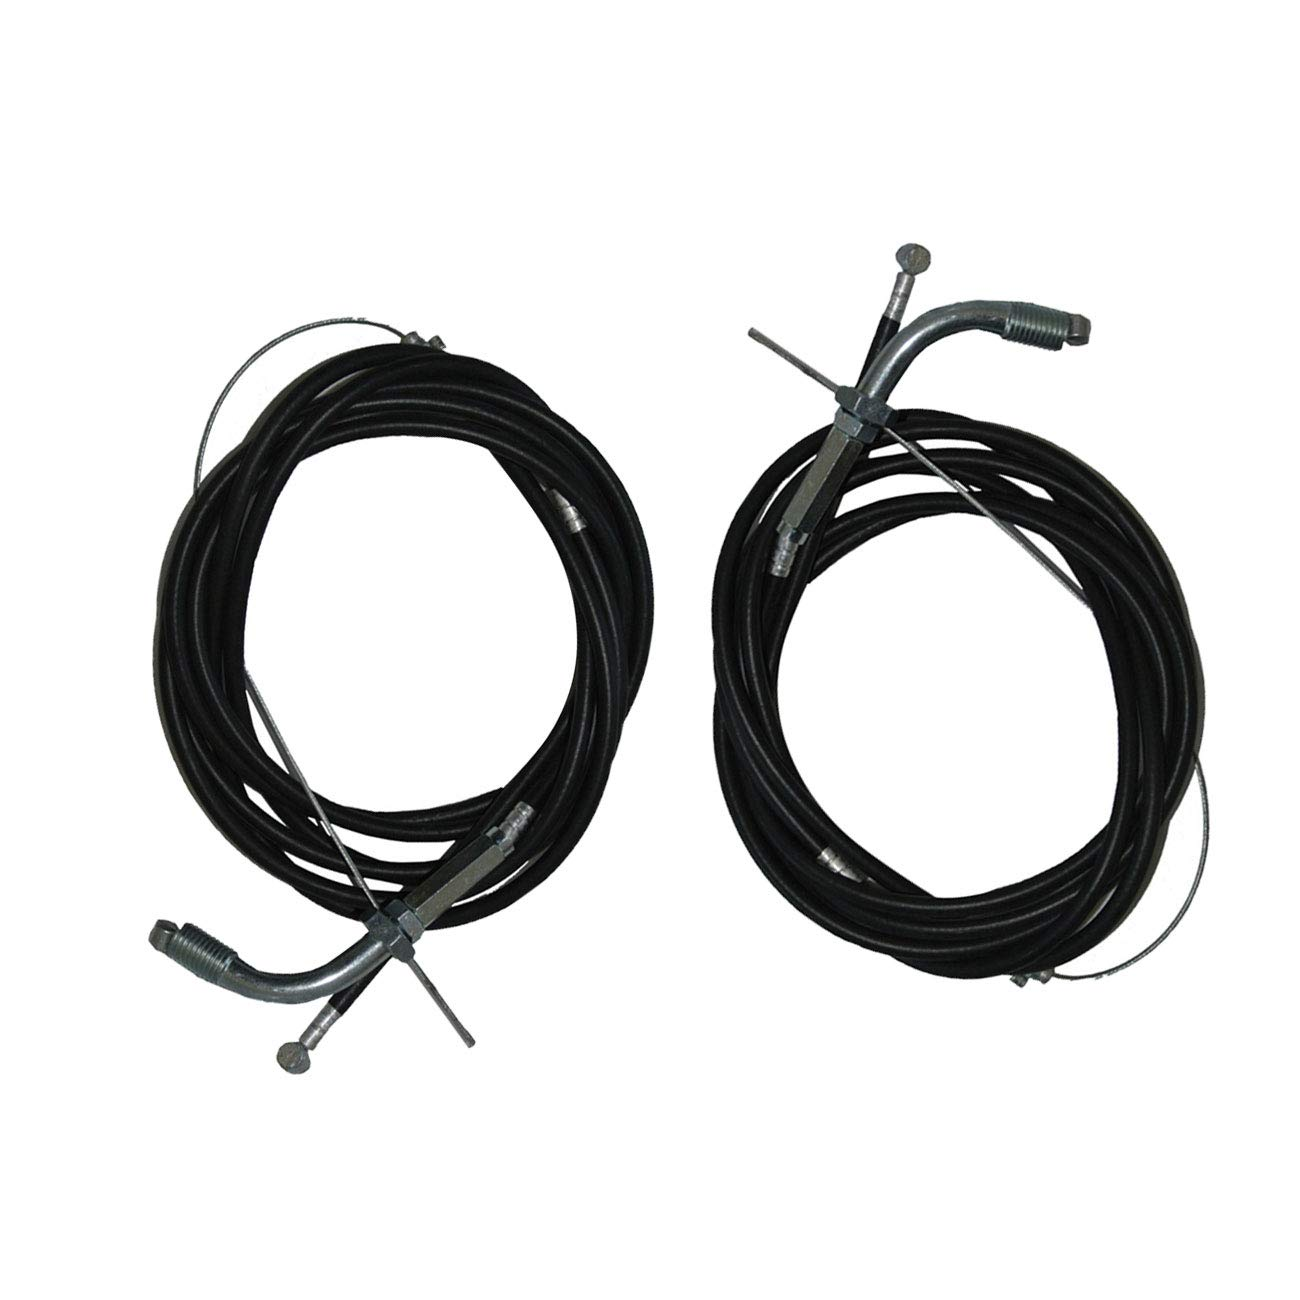 NORTHTIGER 2pcs Throttle Cable Clutch Cable for 66cc 80cc 2 Stroke Engine Motorized Bicycle